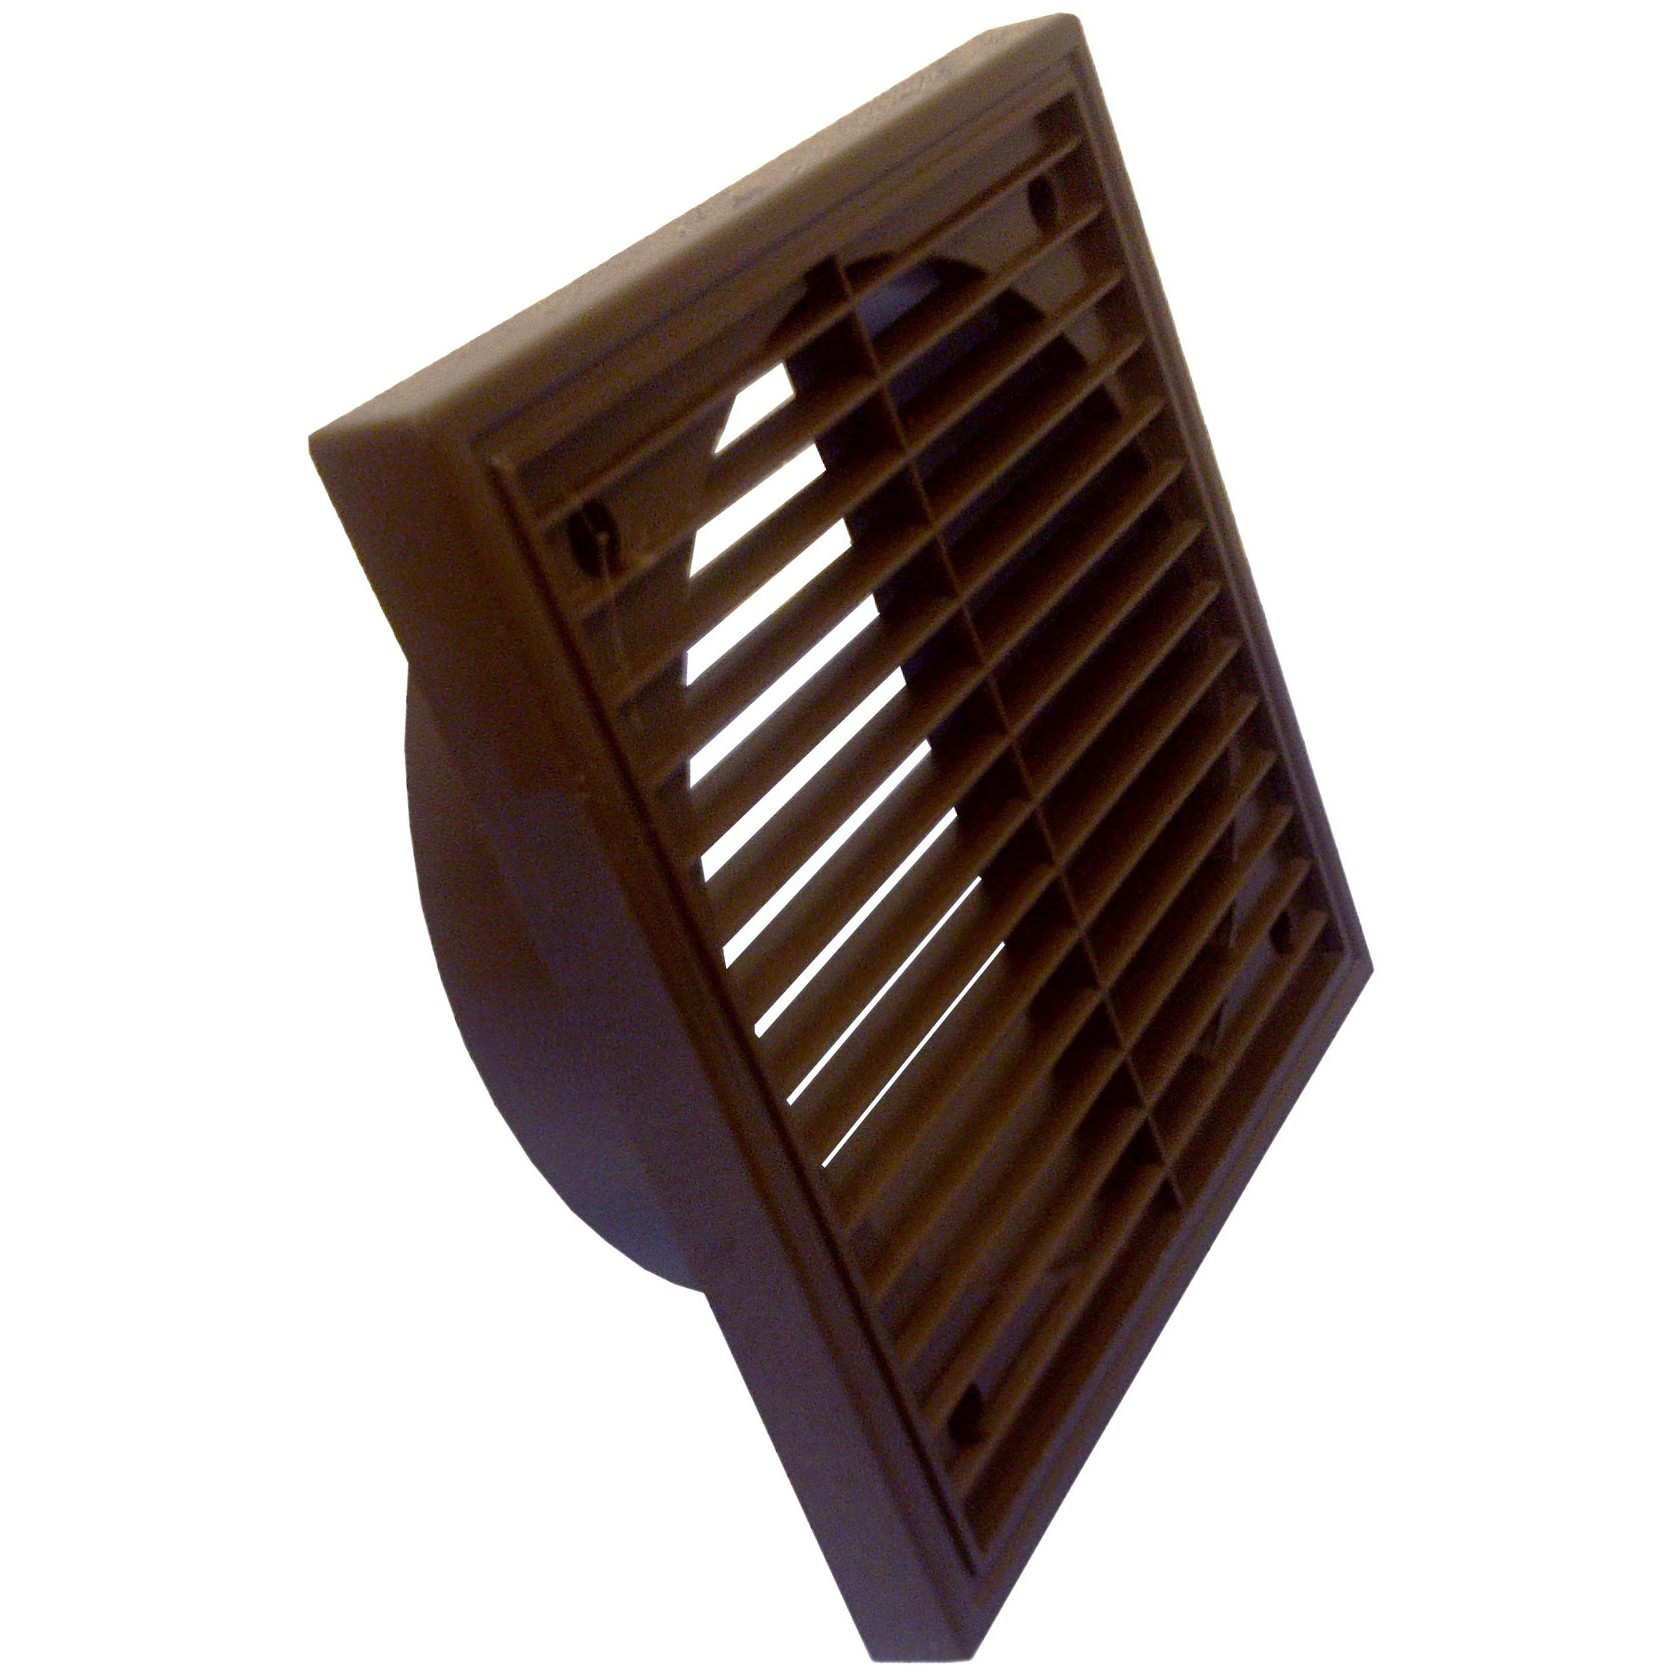 Manrose Round Ducting Pipe Fixed Grille Vent Outlet - Brown, 125mm